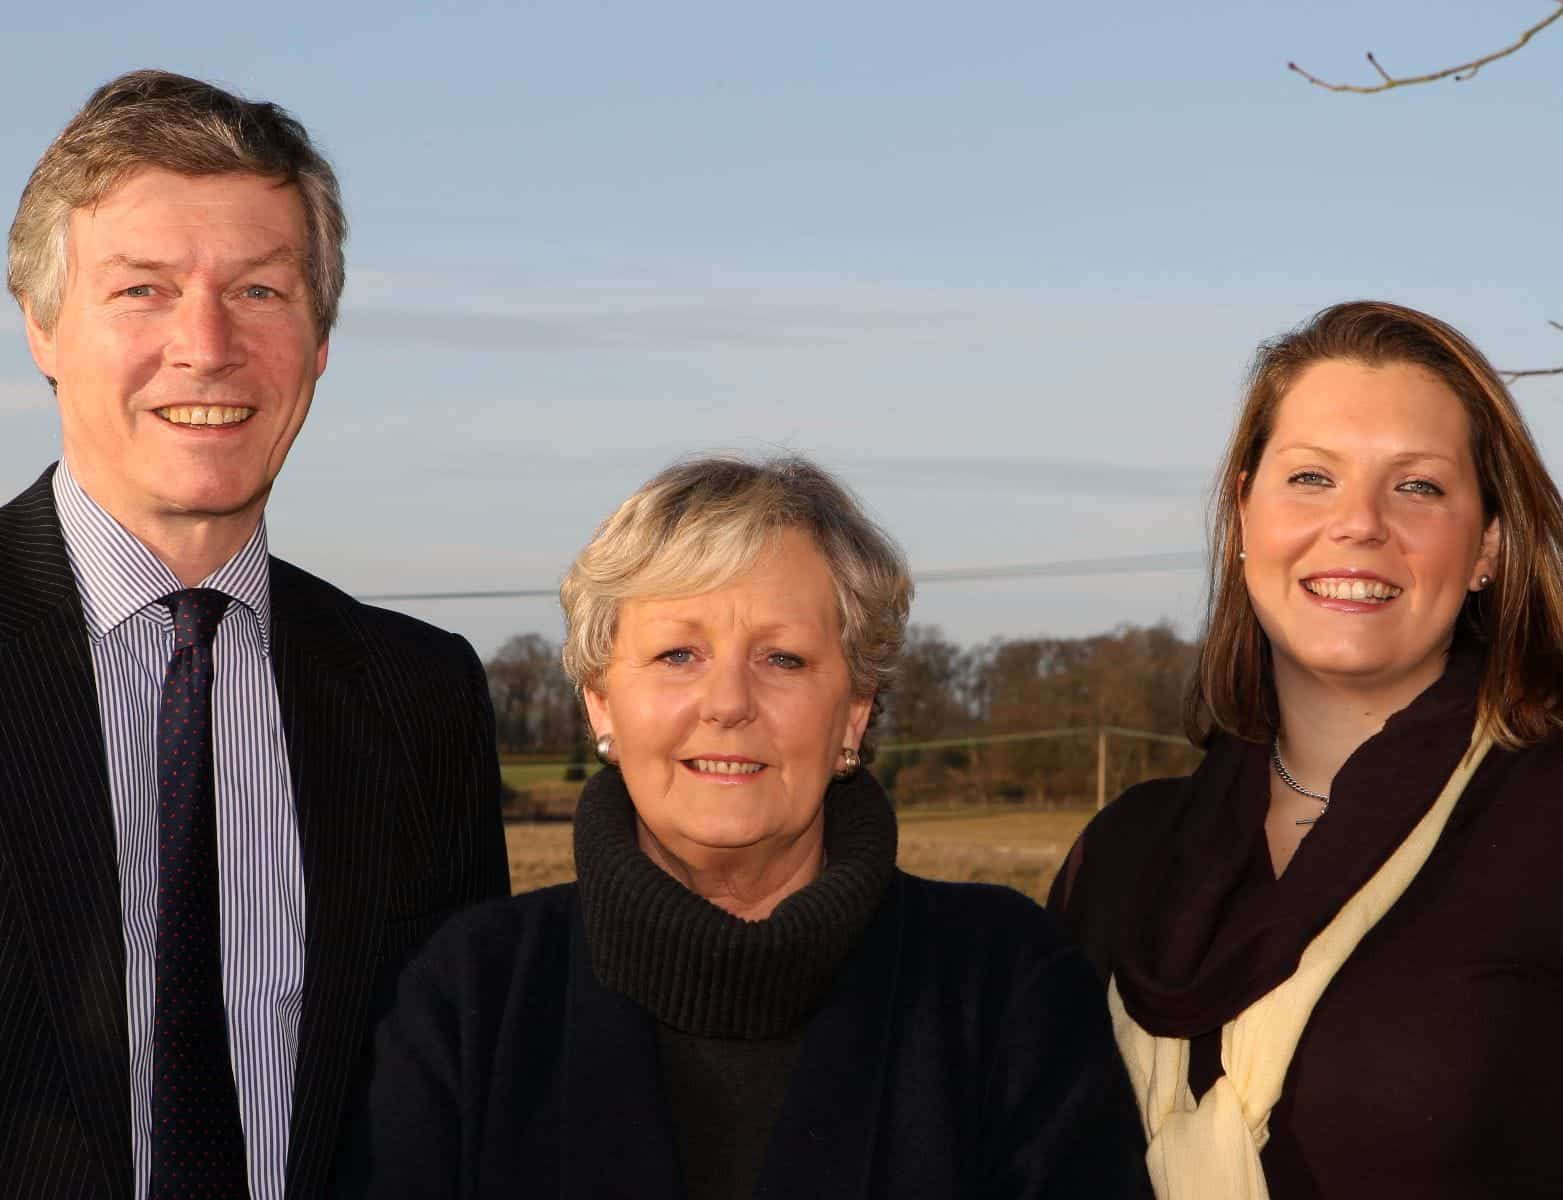 Suffolk Marketing Agency is a Family Affair